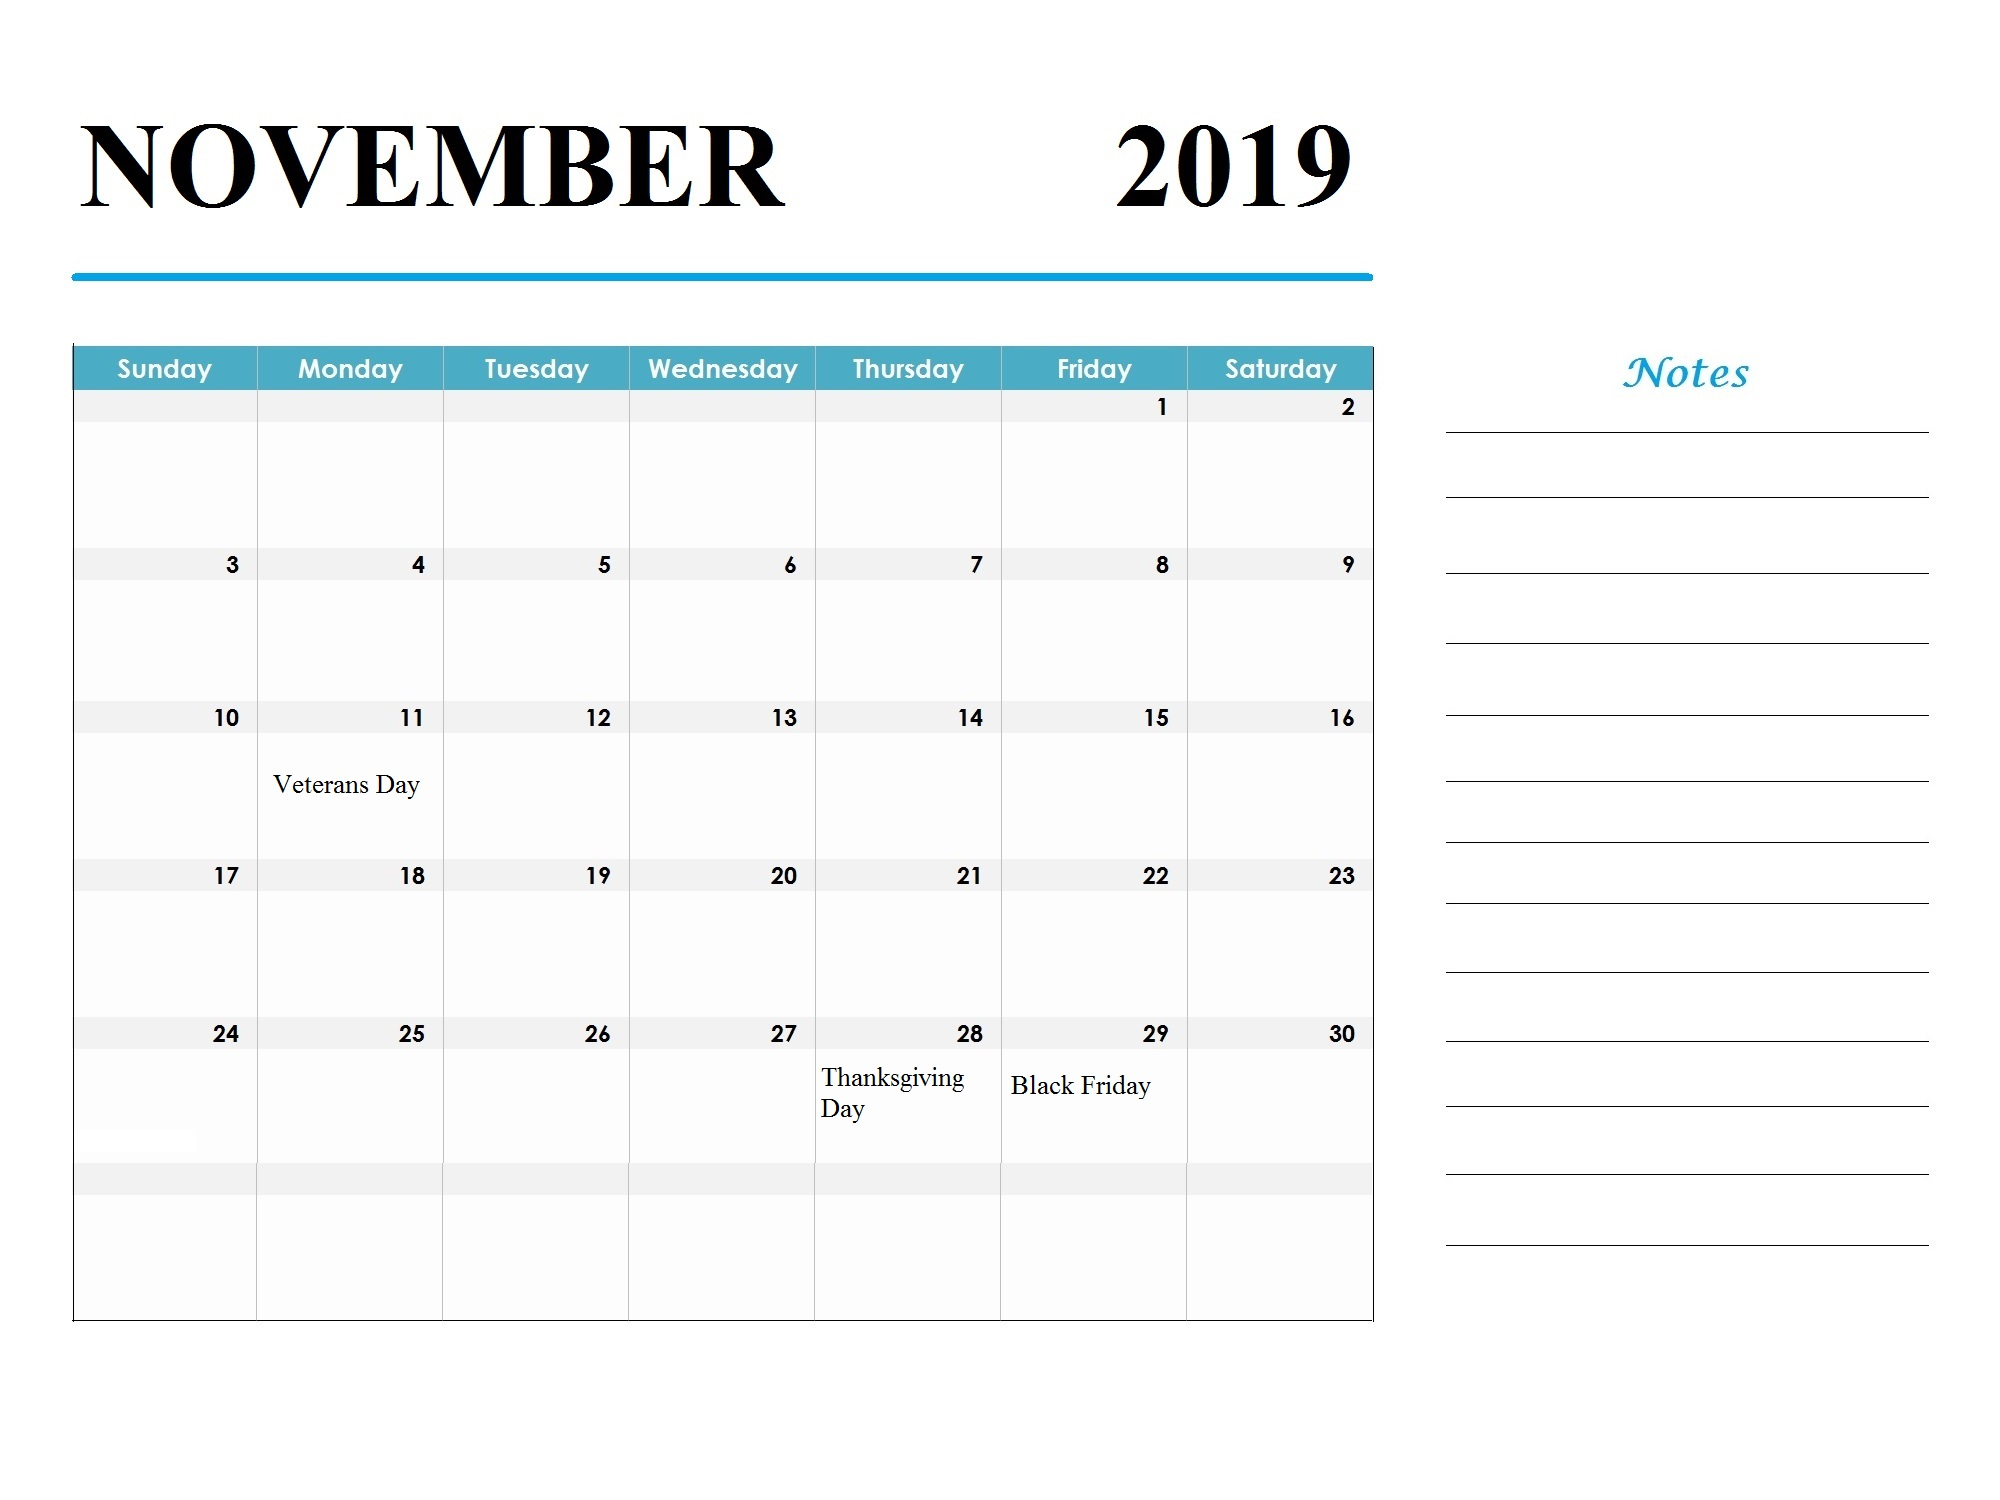 November 2019 Holidays Calendar Template